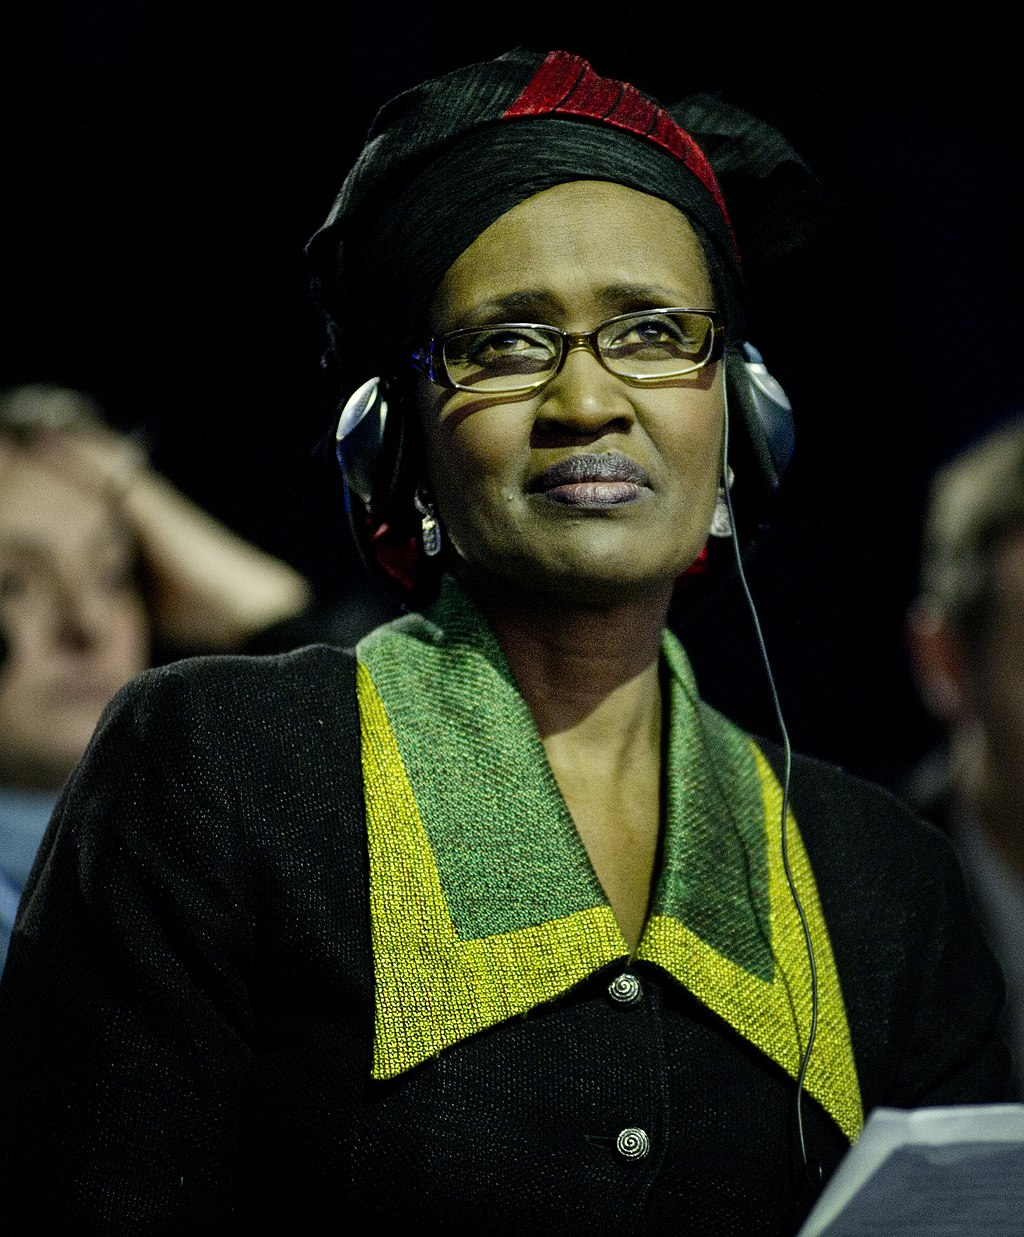 GNP+ congratulates Winnie Byanyima on her appointment as UNAIDS Executive Director